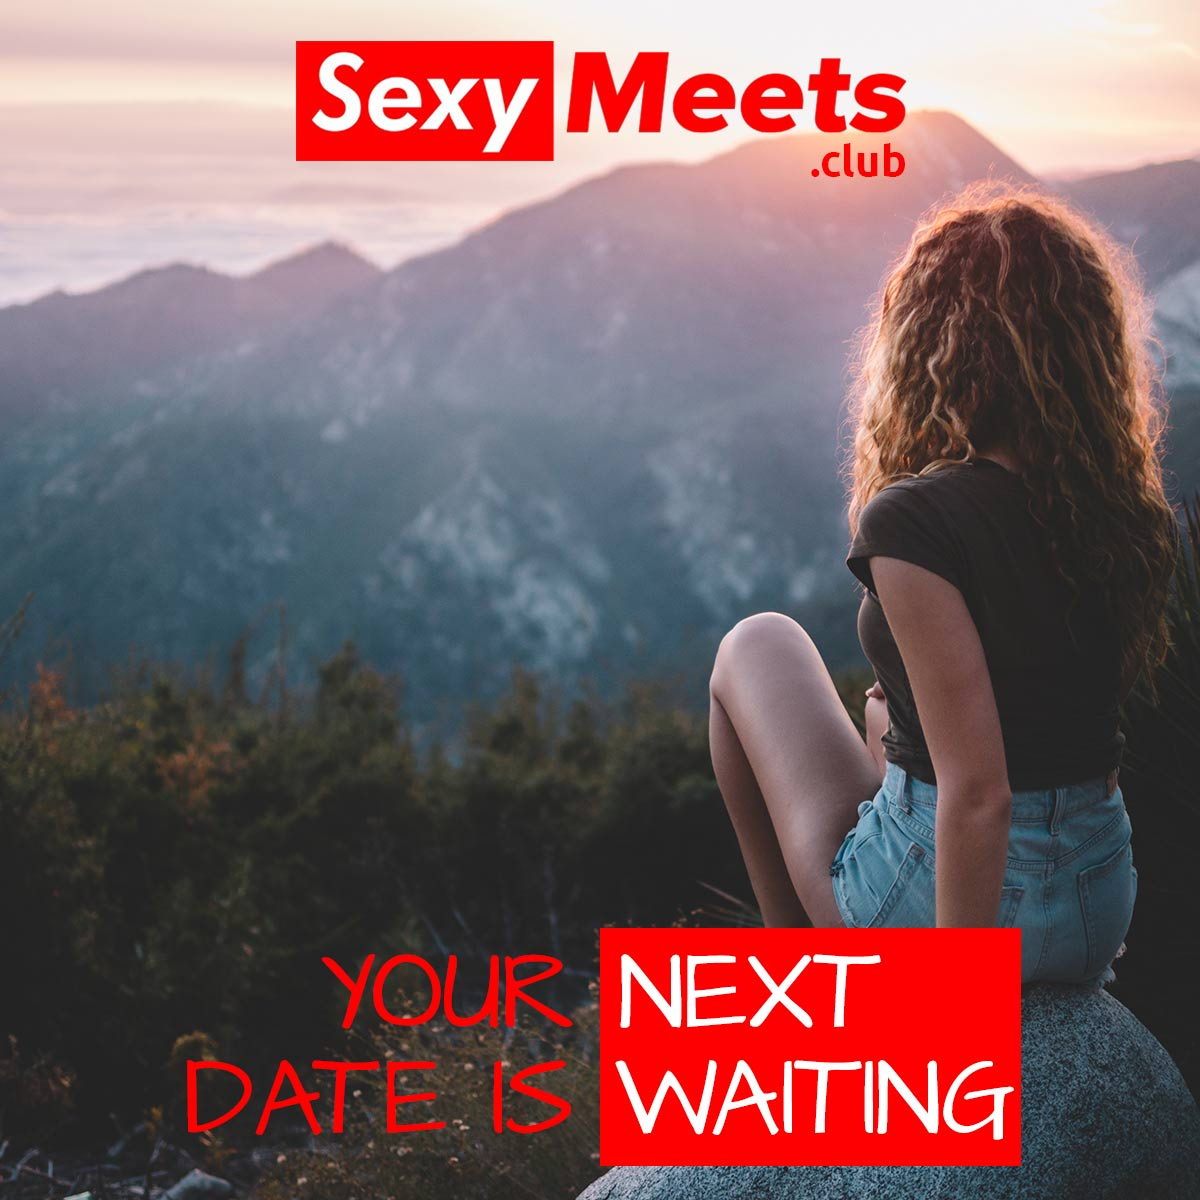 1200x1200_Your_next_date_is_waiting